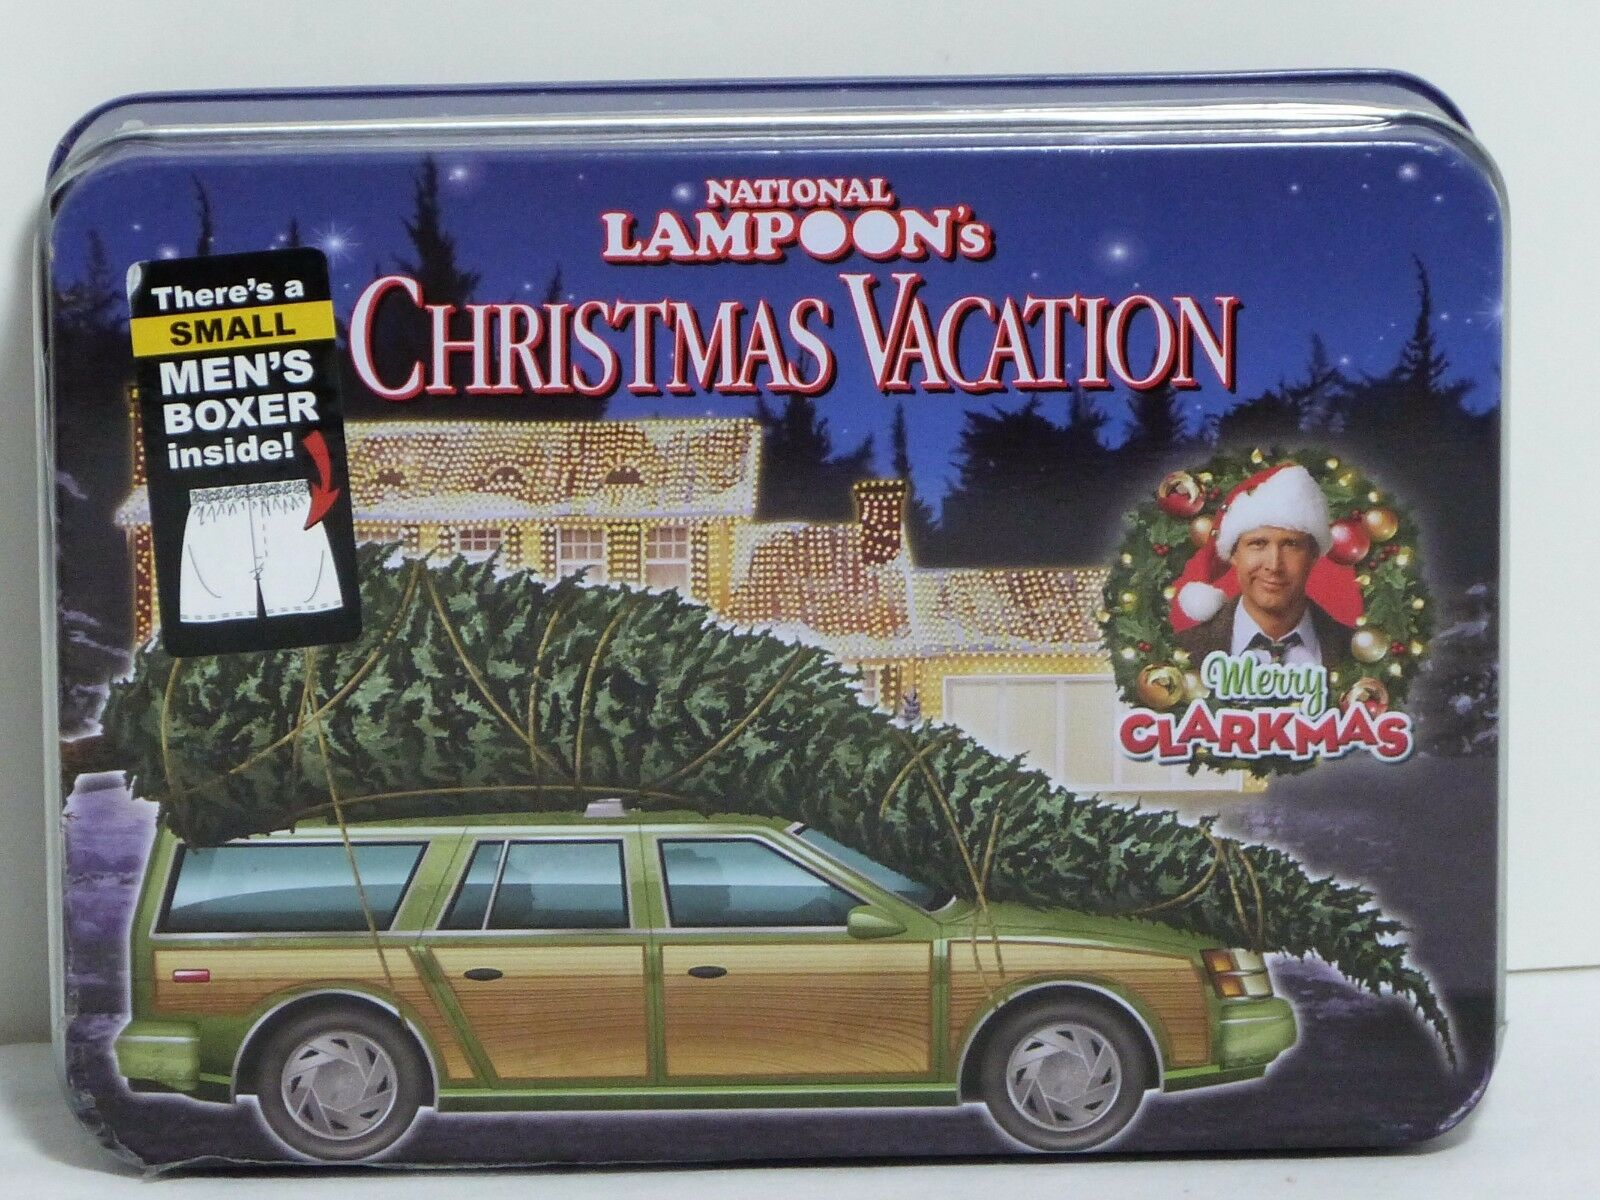 Christmas Vacation Car.National Lampoon S Christmas Vacation Red Mens S Boxers Woody Wagon Tree Tin